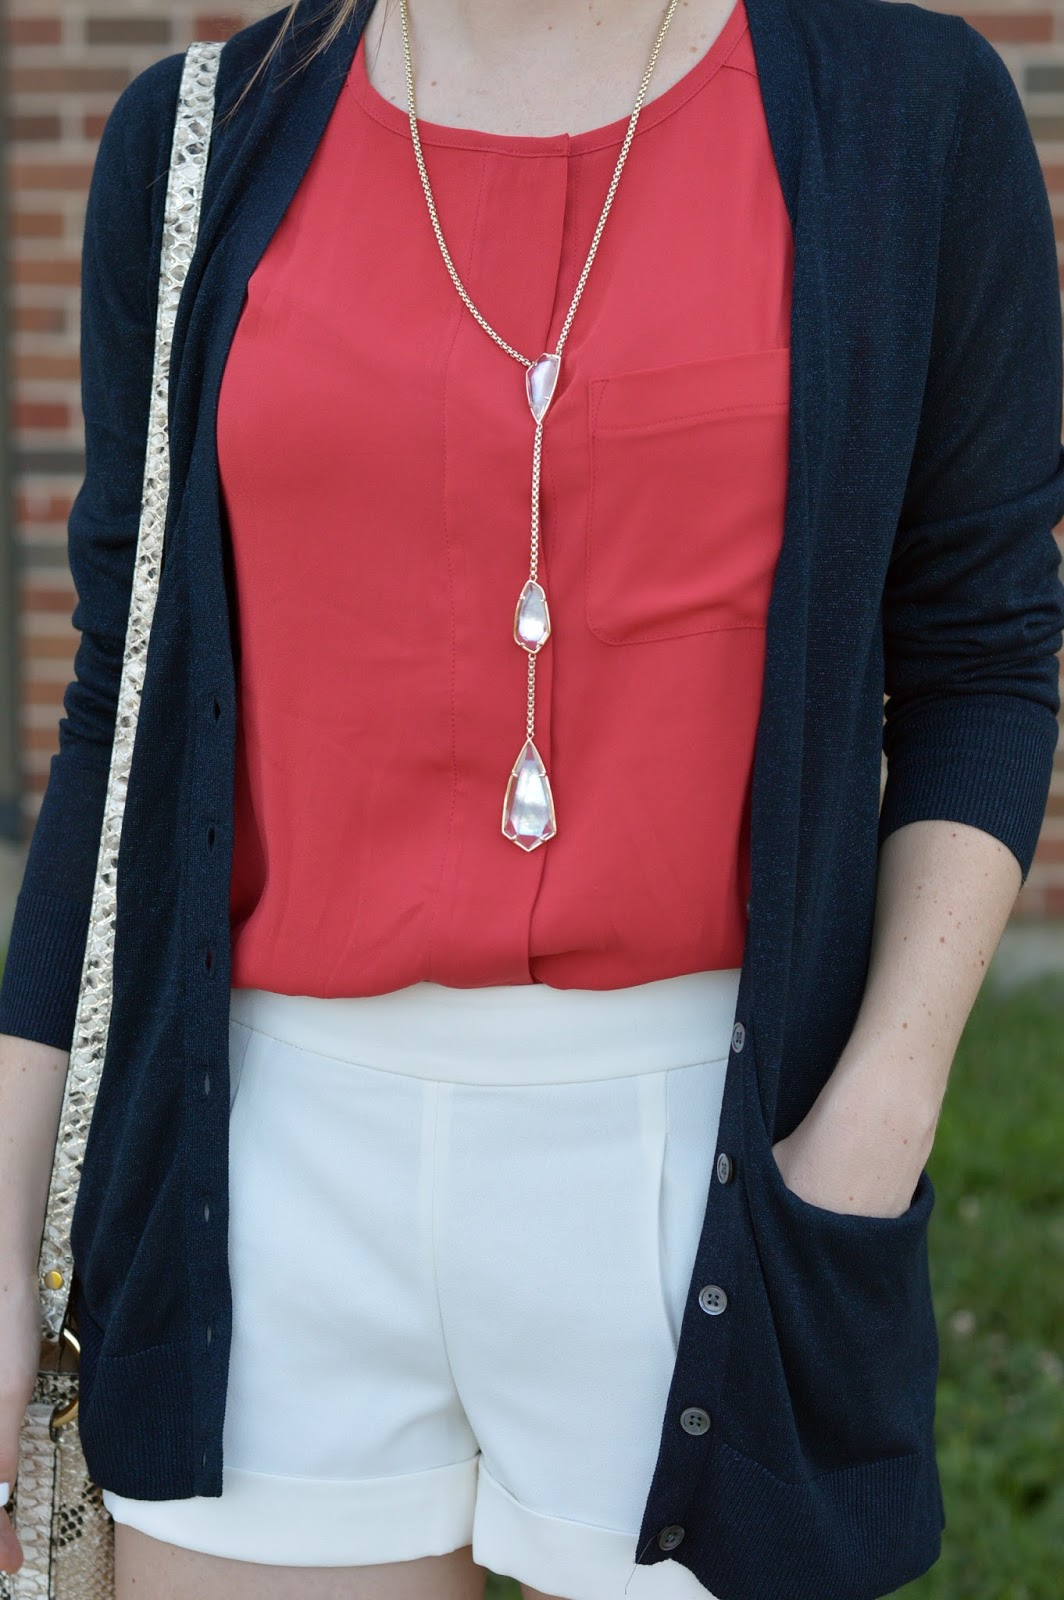 red  white and blue outfit ideas | kendra scott necklace | what to wear this summer | what looks good with white shorts | boyfriend cardigan paired with shorts |